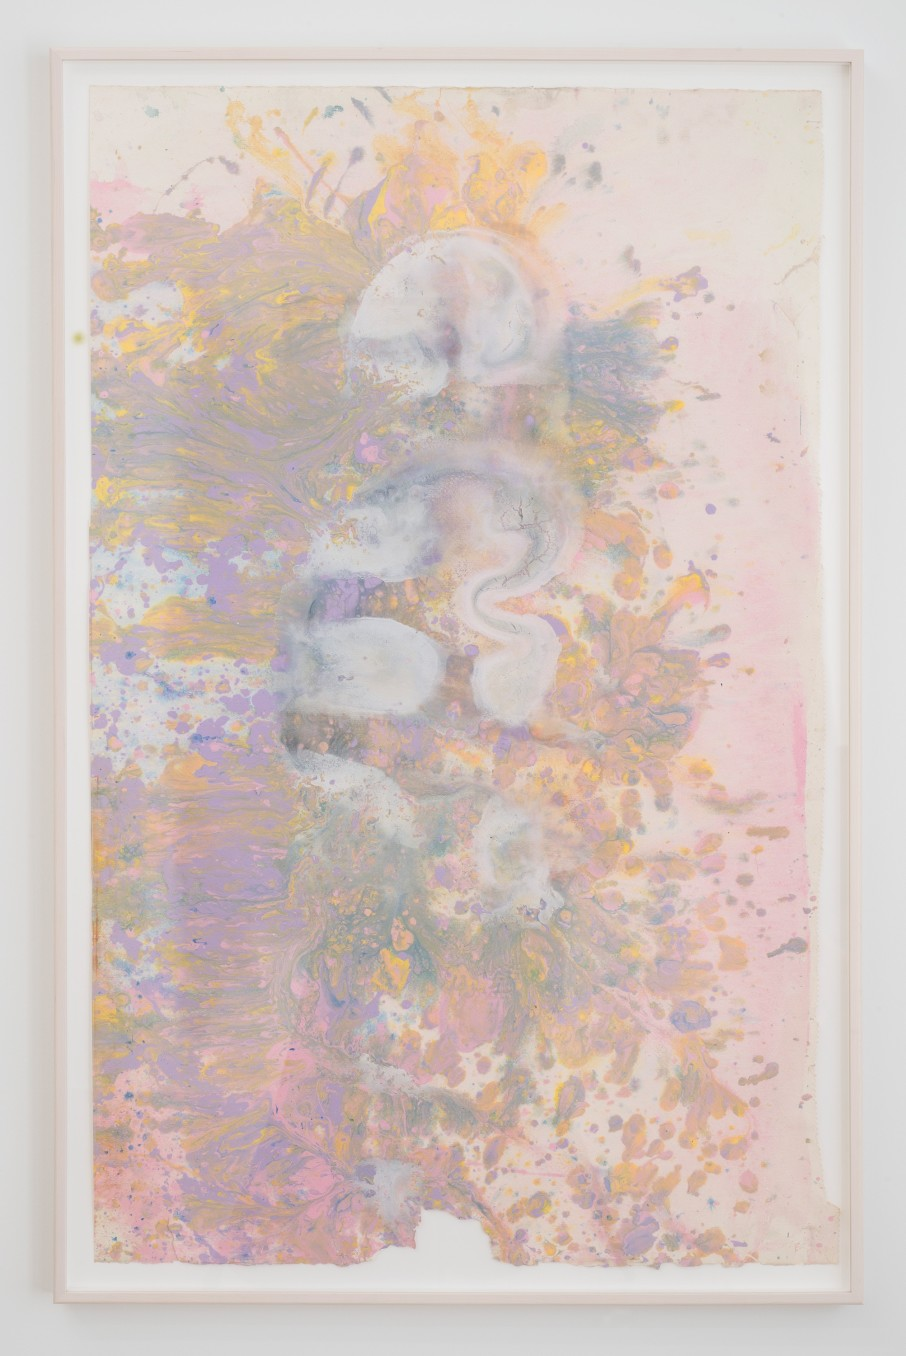 Frank Bowling Vase, 1985 Acrylic on paper Framed: 120 x 77 cm 47 1/4 x 30 1/4 in